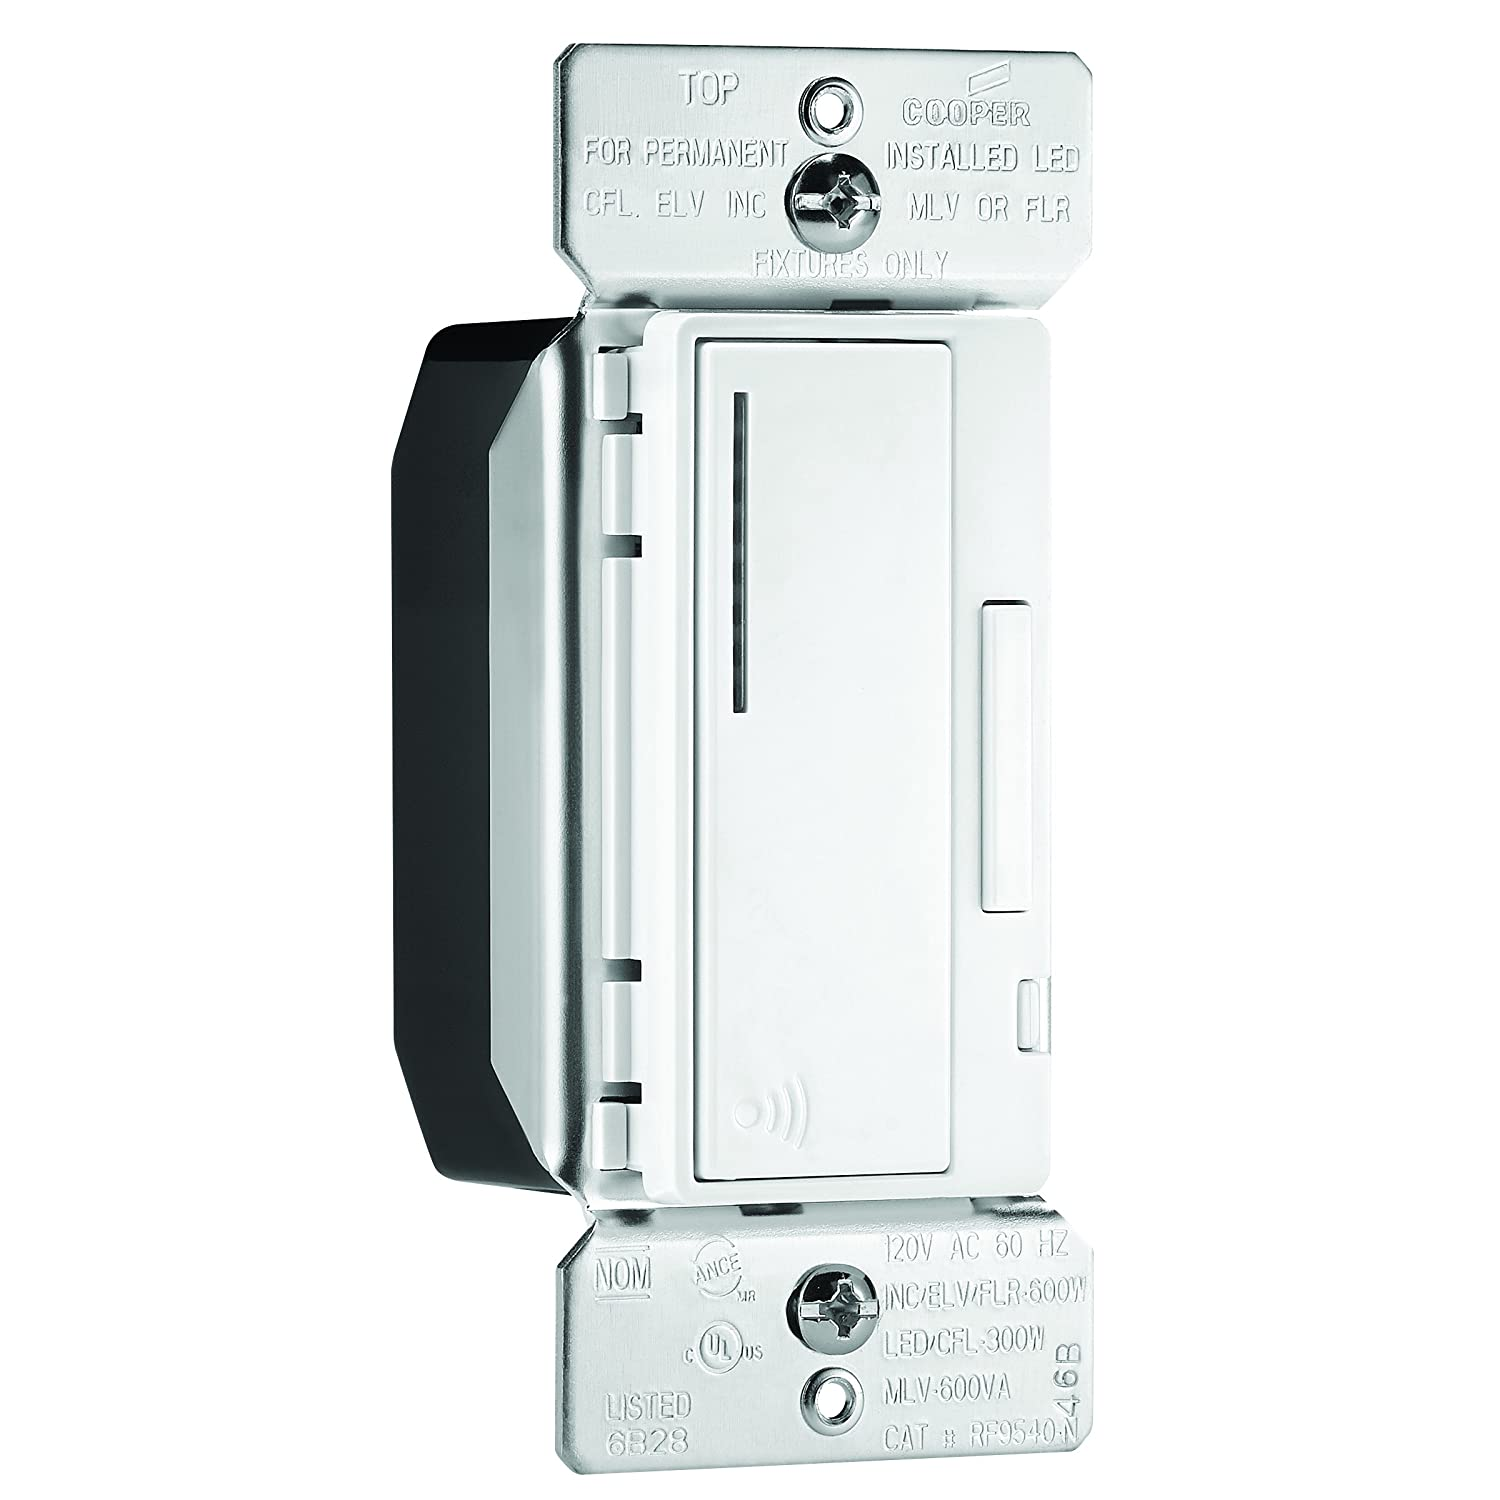 Cooper Diagram Aspire Wiring 9534ws Library Devices Inc Eatons Rf9540 Ndw 600w All Load Rf Smart Dimmer System Master